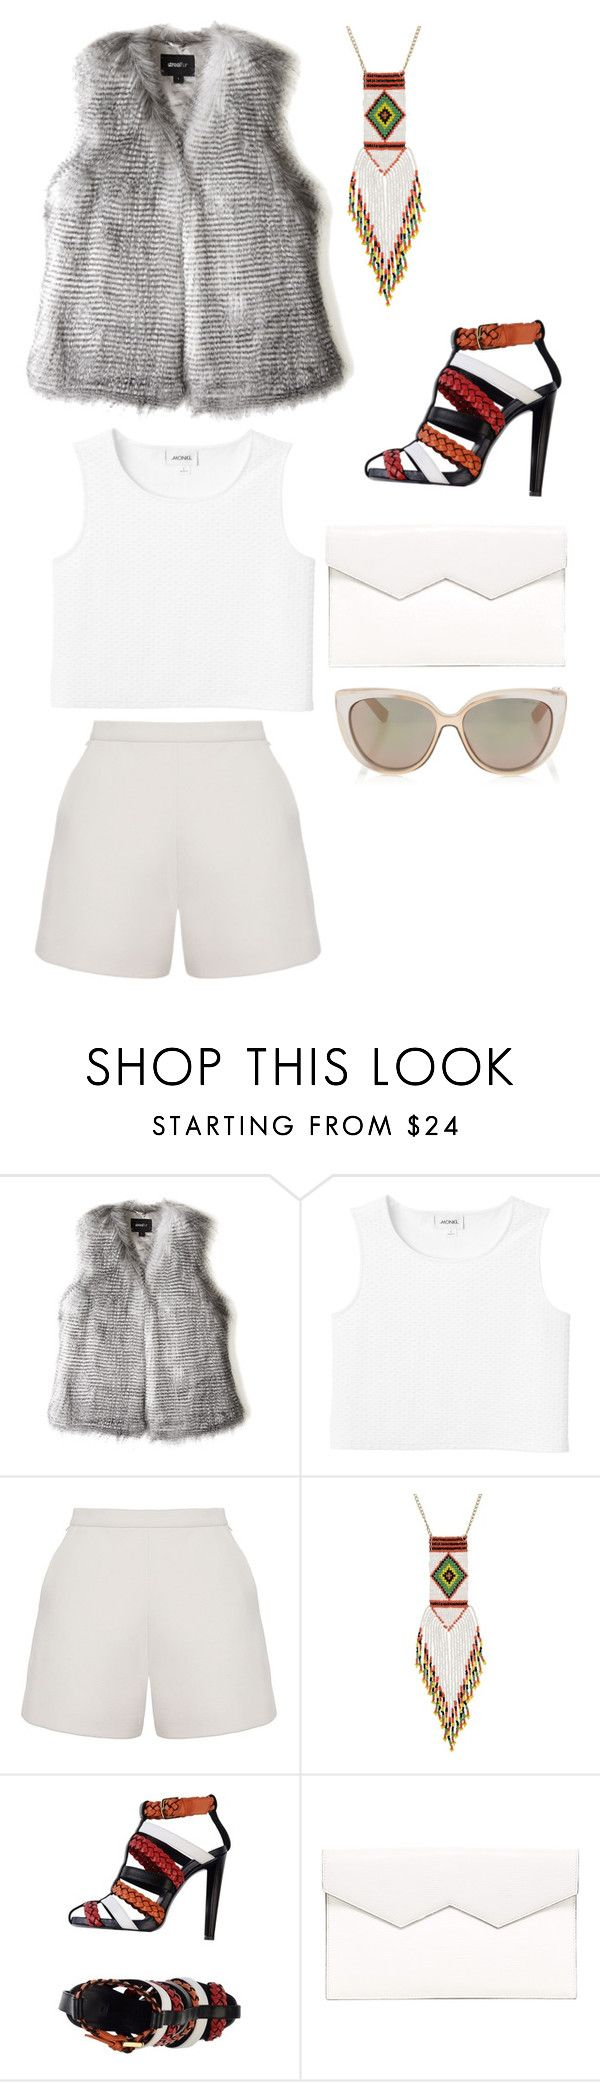 """Untitled #10313"" by beatrizibelo ❤ liked on Polyvore featuring Unreal Fur, Monki, Ruban, George J. Love, Vionnet, Fabiola Pedrazzini and Jimmy Choo"